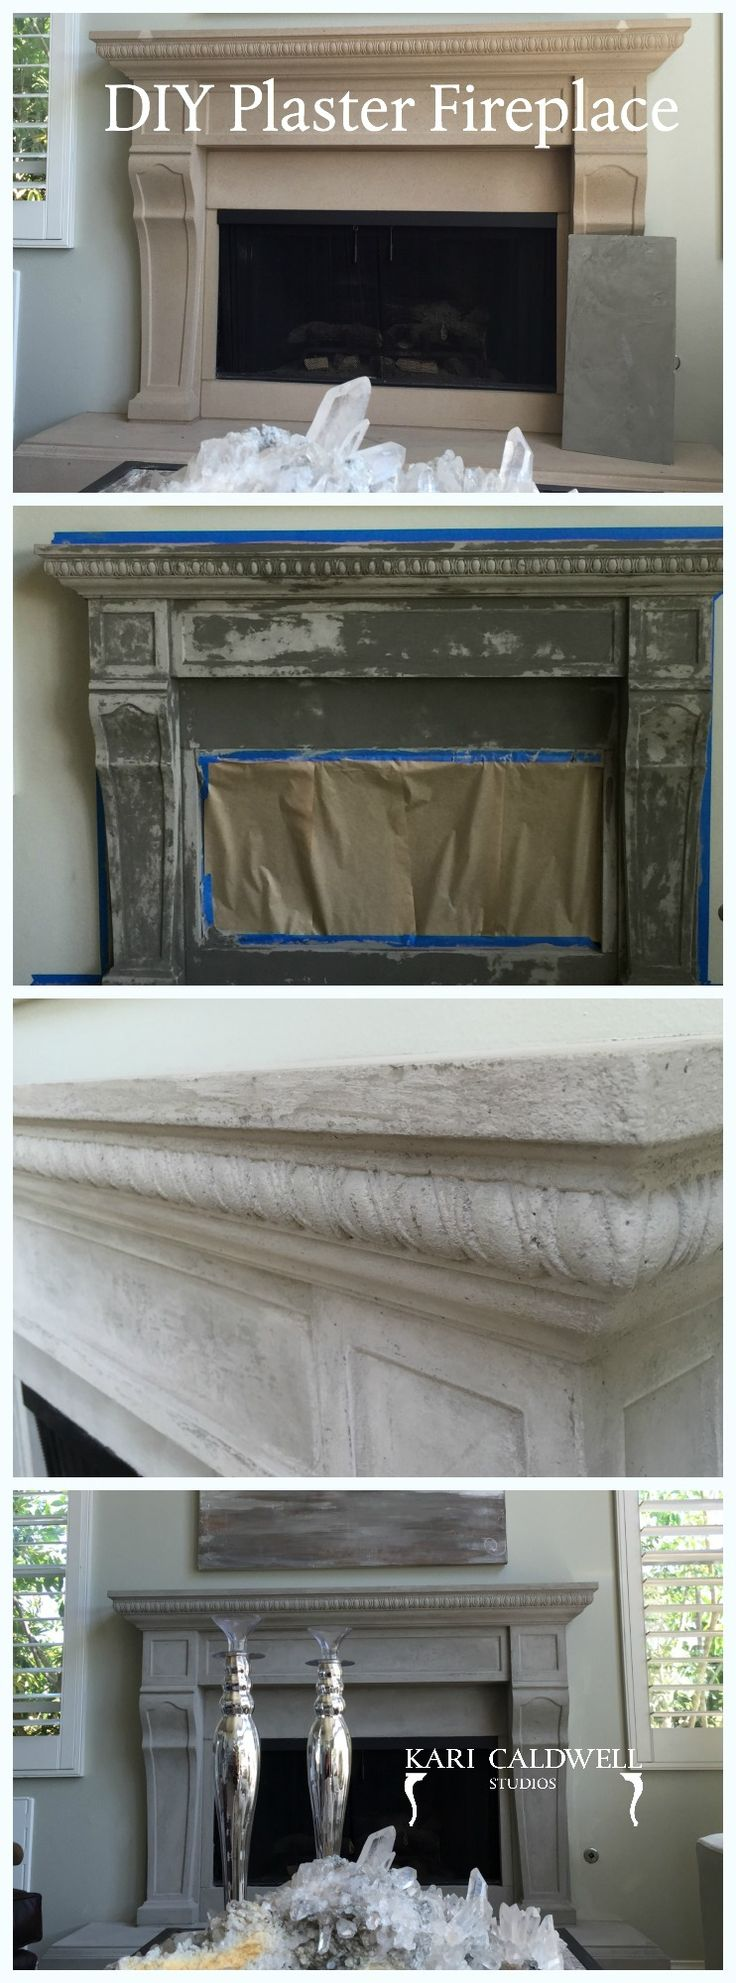 Learn to refinish your old fireplace with plaster! https://sellfy.com/p/hQdA/